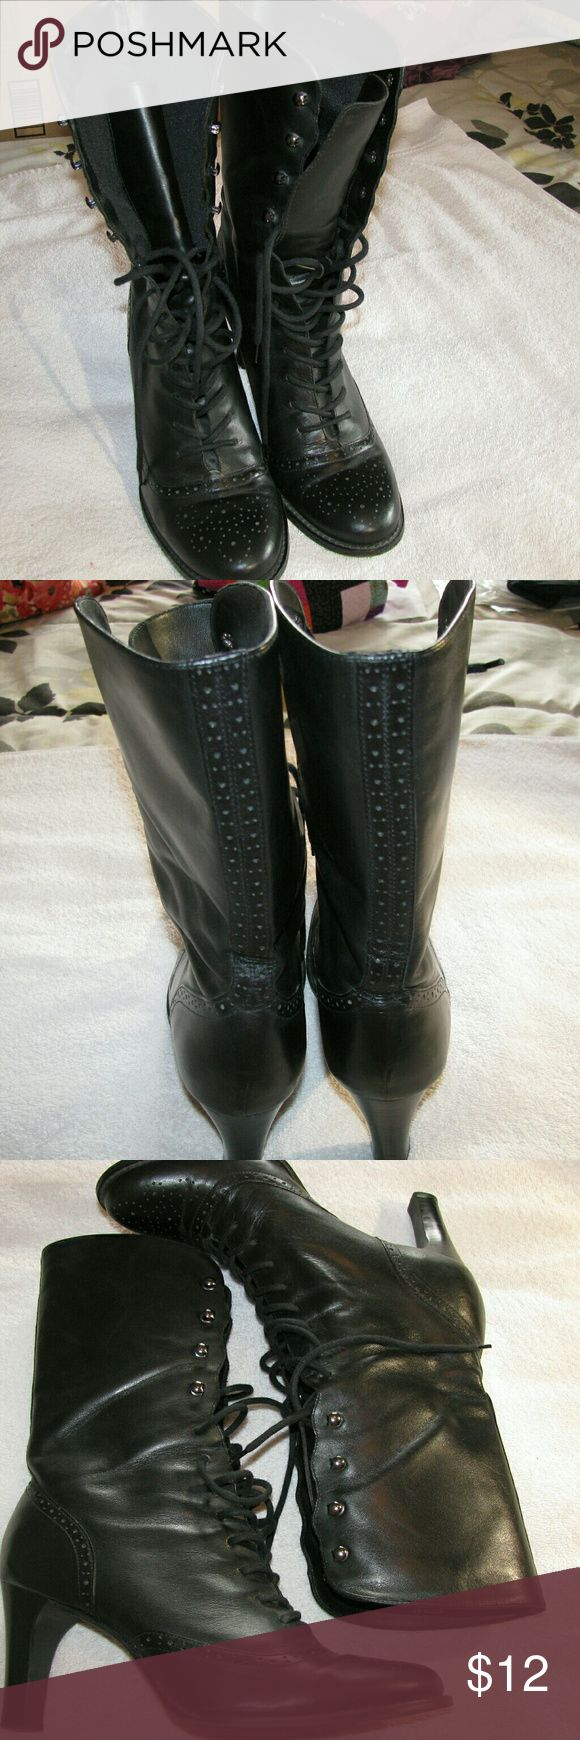 """White Mountain black mid calf boots 3"""" heel White Mountain black mid calf boots 3"""" heel White Mountain  Shoes Heeled Boots"""